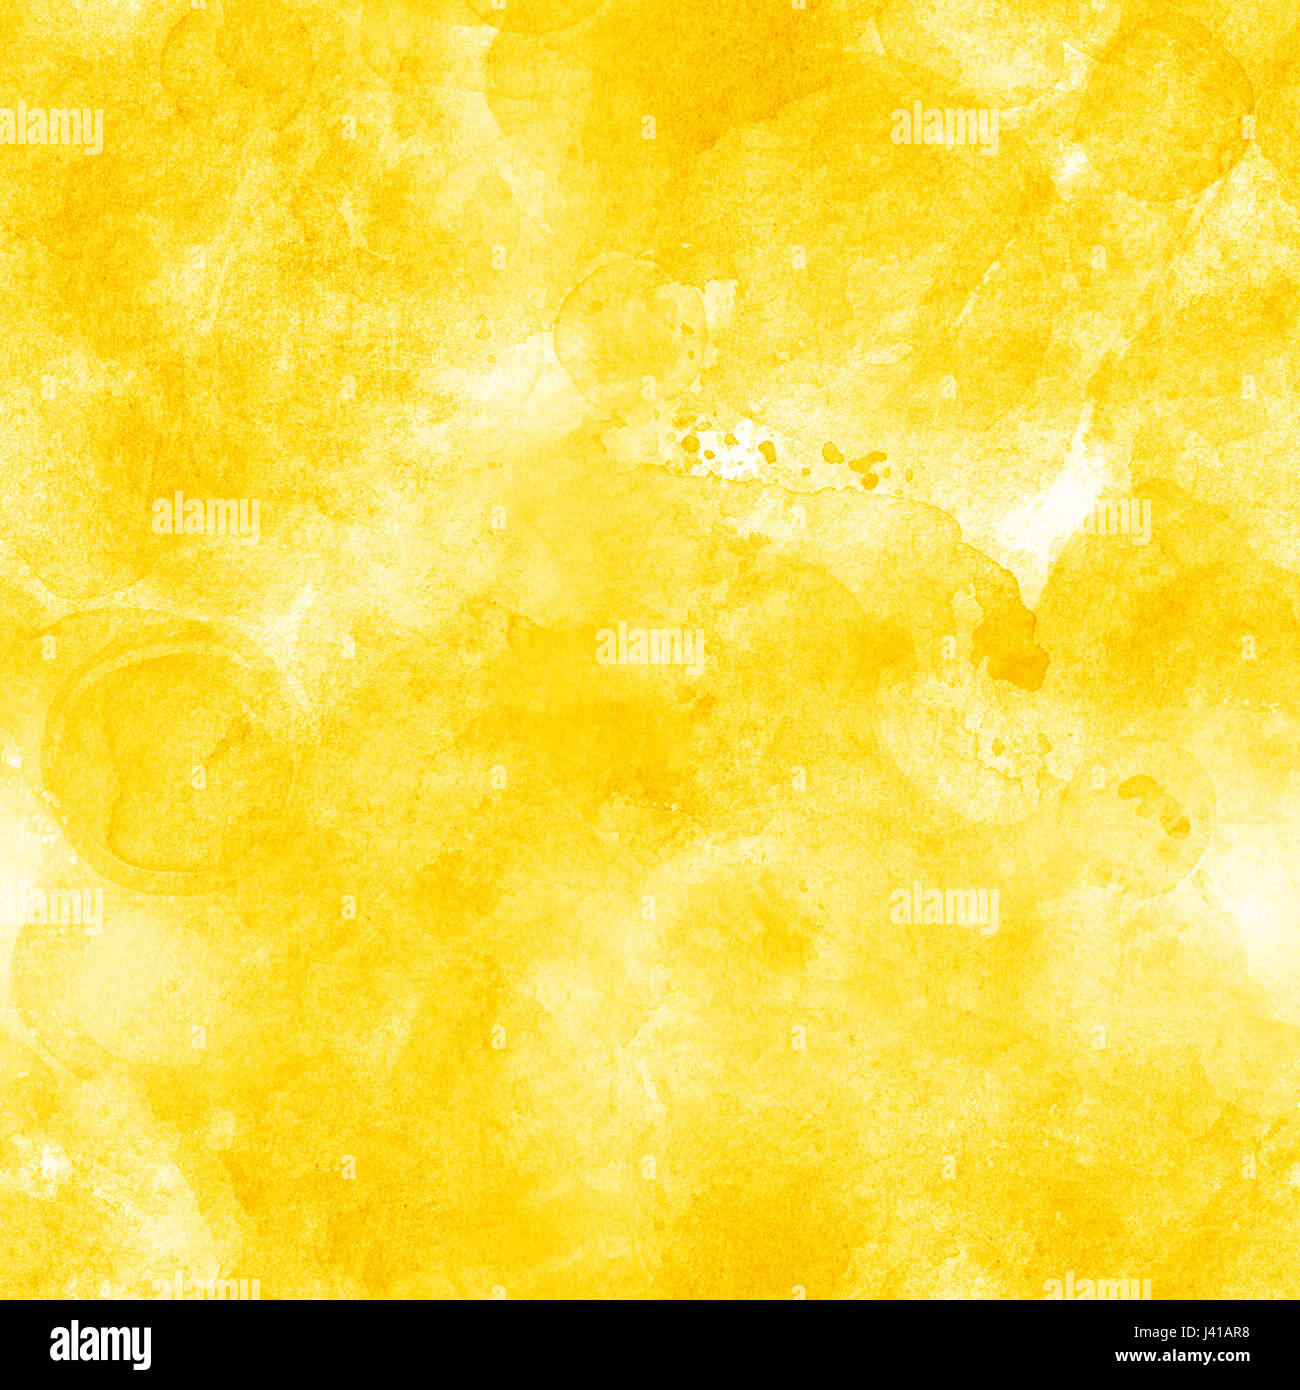 A seamless artistic golden yellow background texture a festive a seamless artistic golden yellow background texture a festive frame for a birthday card or a wedding invitation stopboris Images